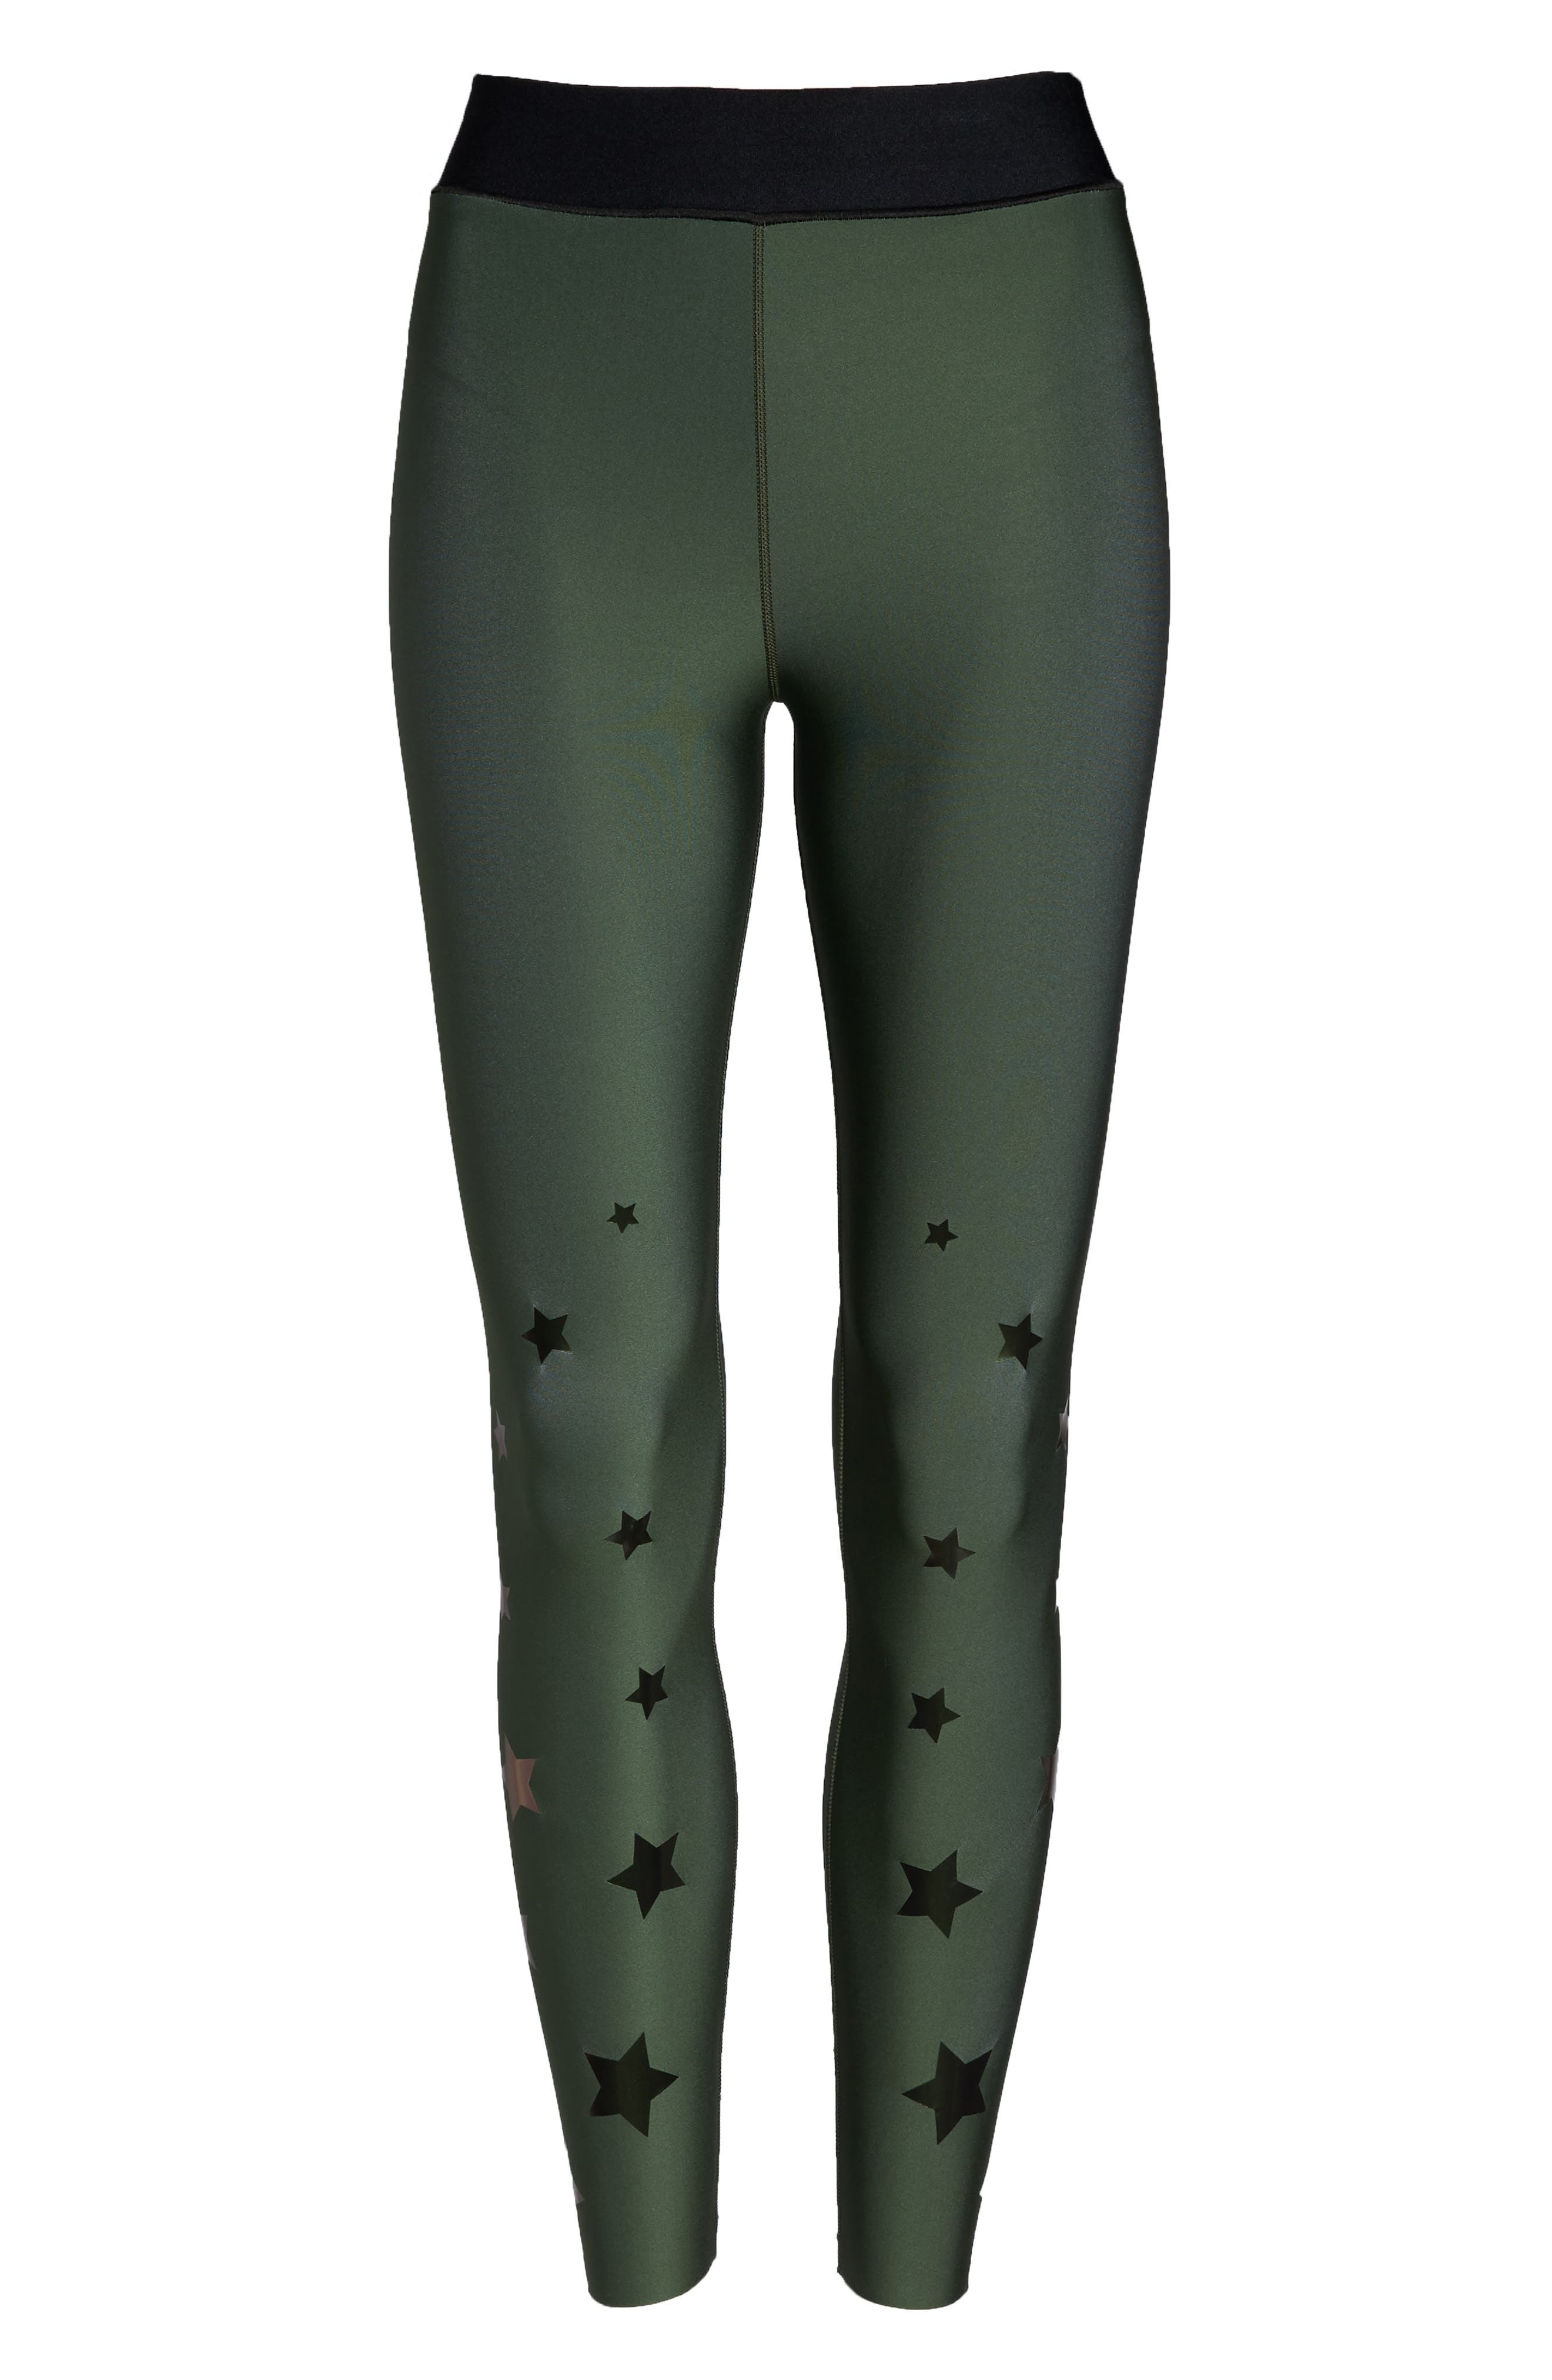 Ultra Luster Leggings,                             Alternate thumbnail 6, color,                             Army Green Beetle